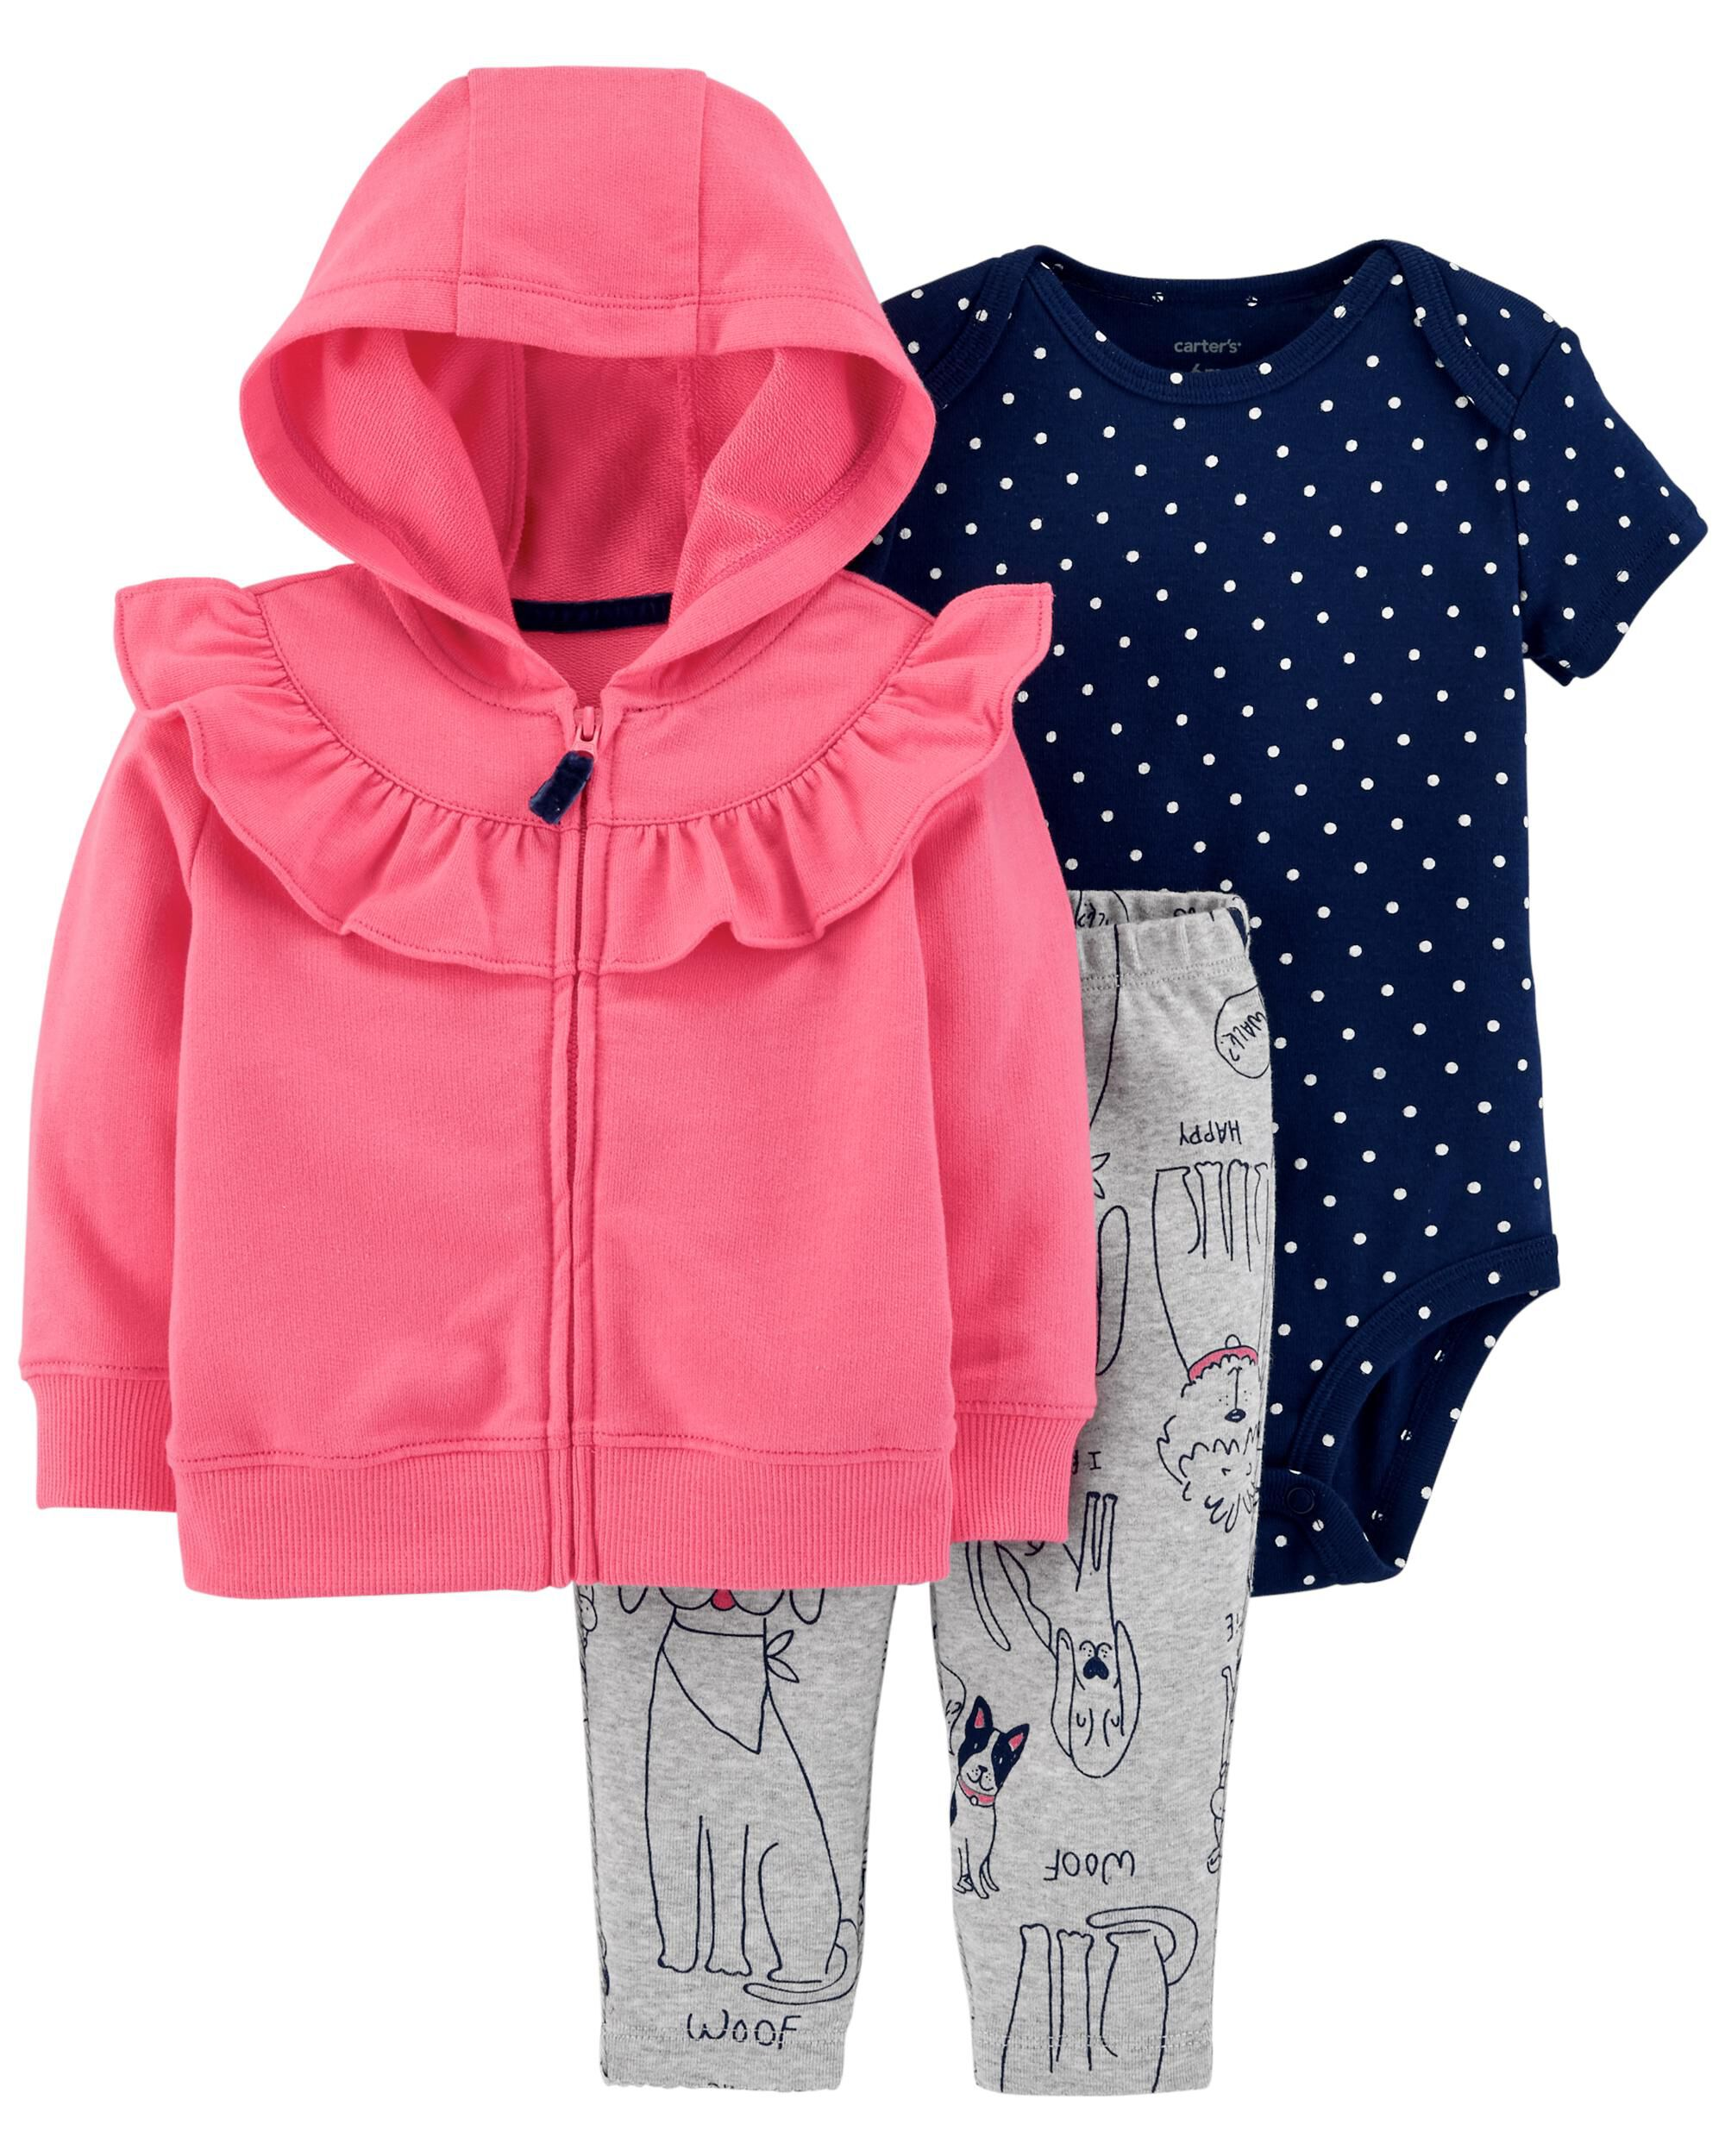 8c35af13c 3-Piece Little Jacket Set